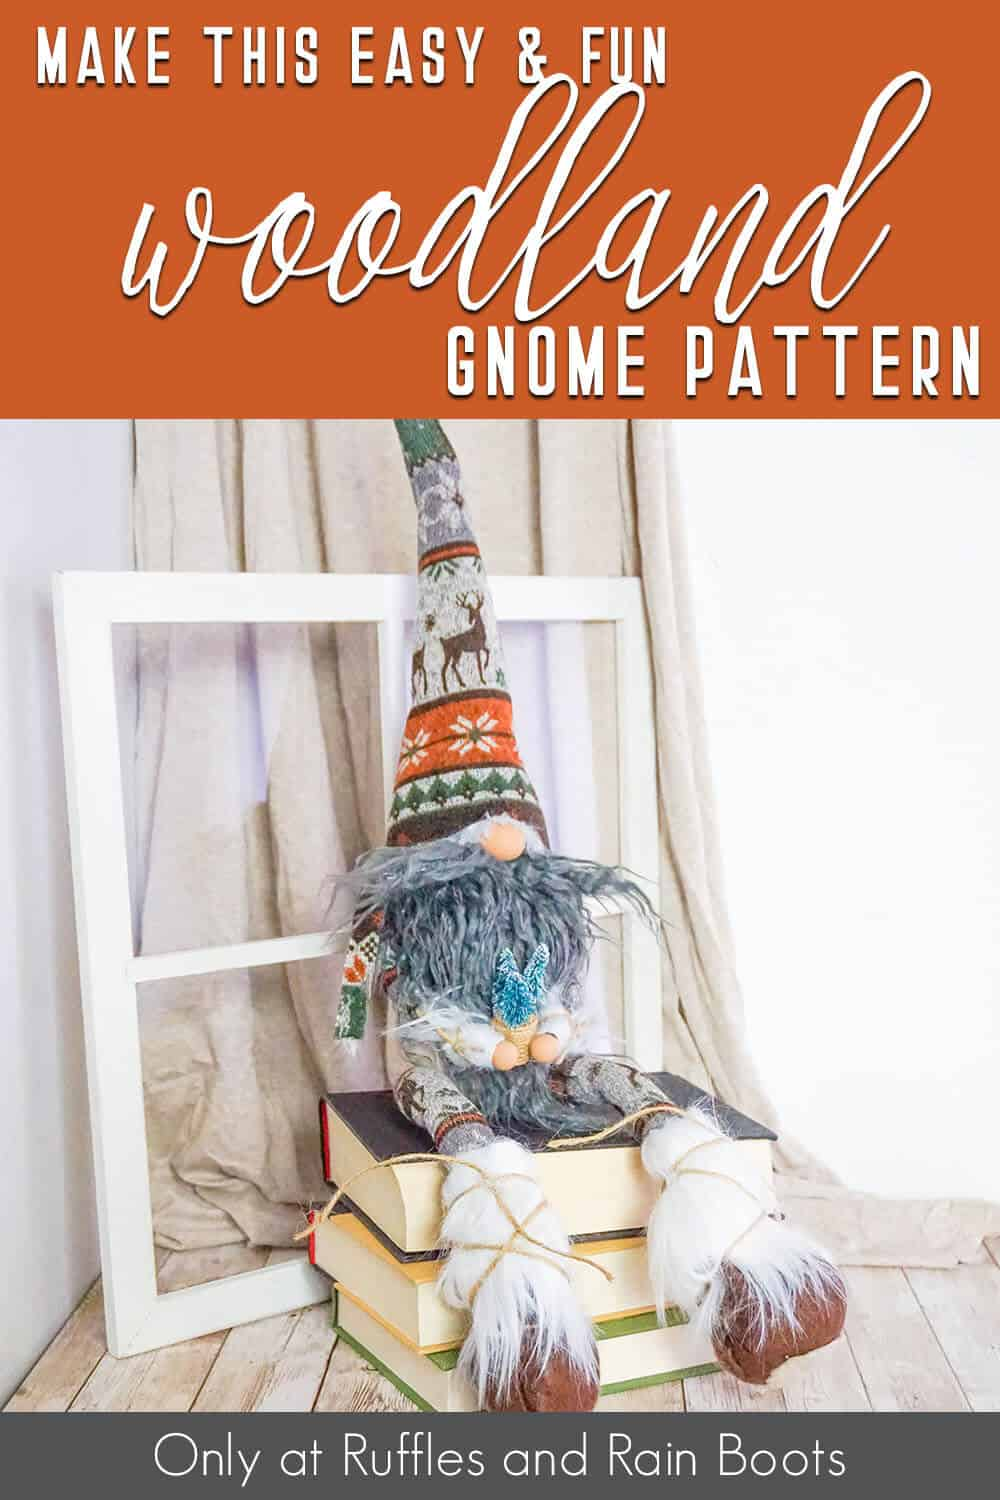 woodsman shelf sitter gnome pattern with text which reads make this easy and fun woodland gnome pattern